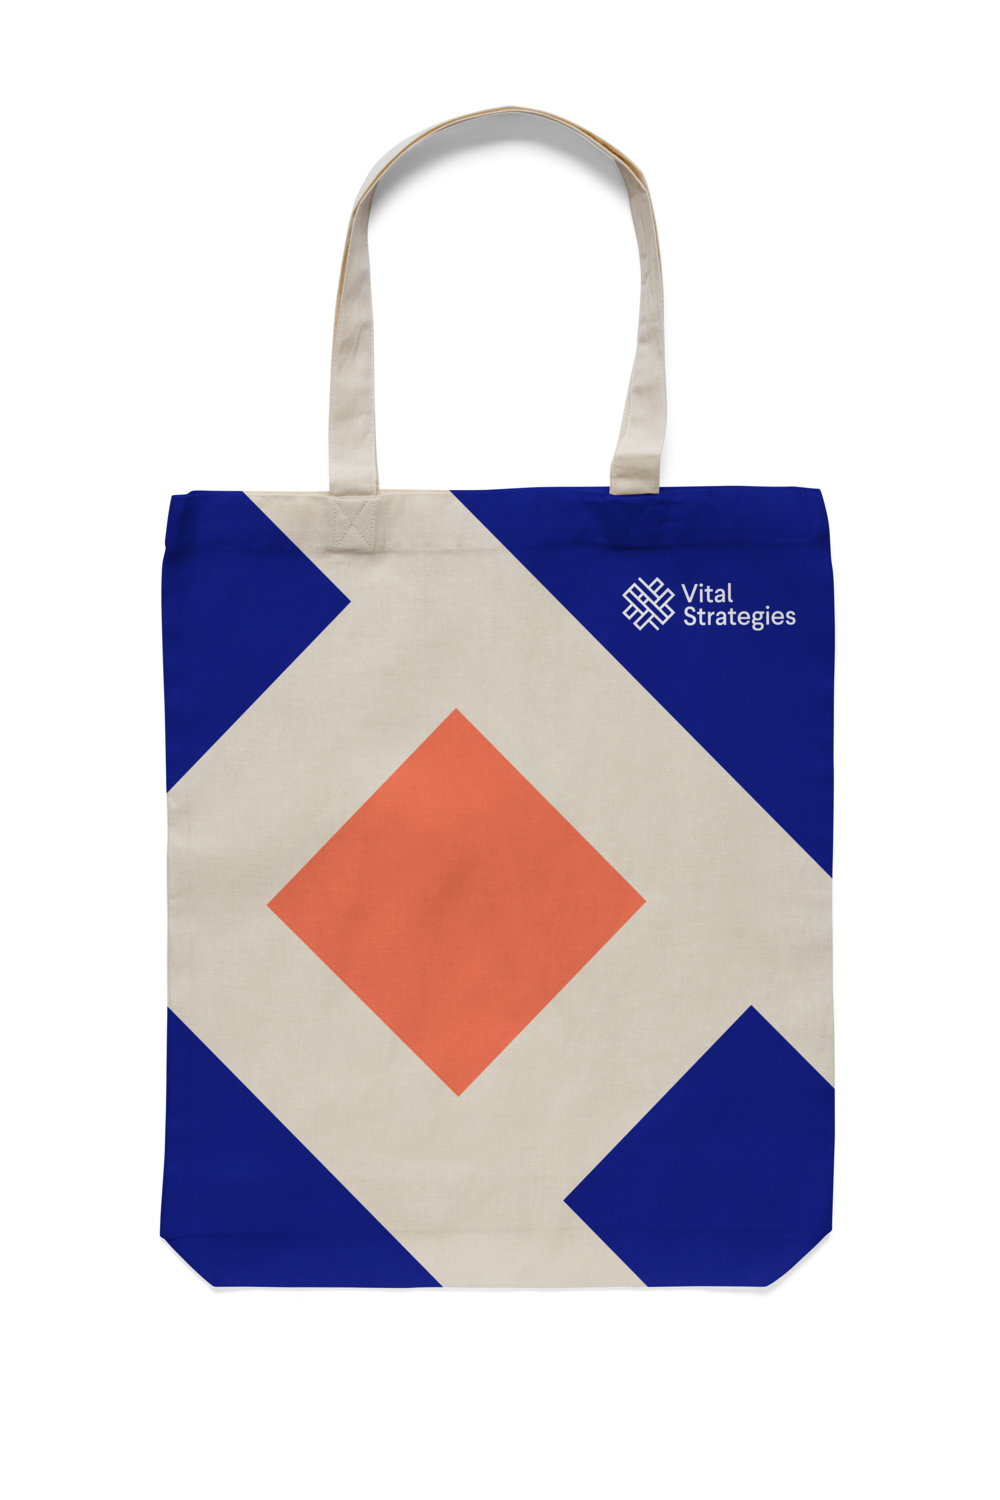 Tote bag Vital Strategies